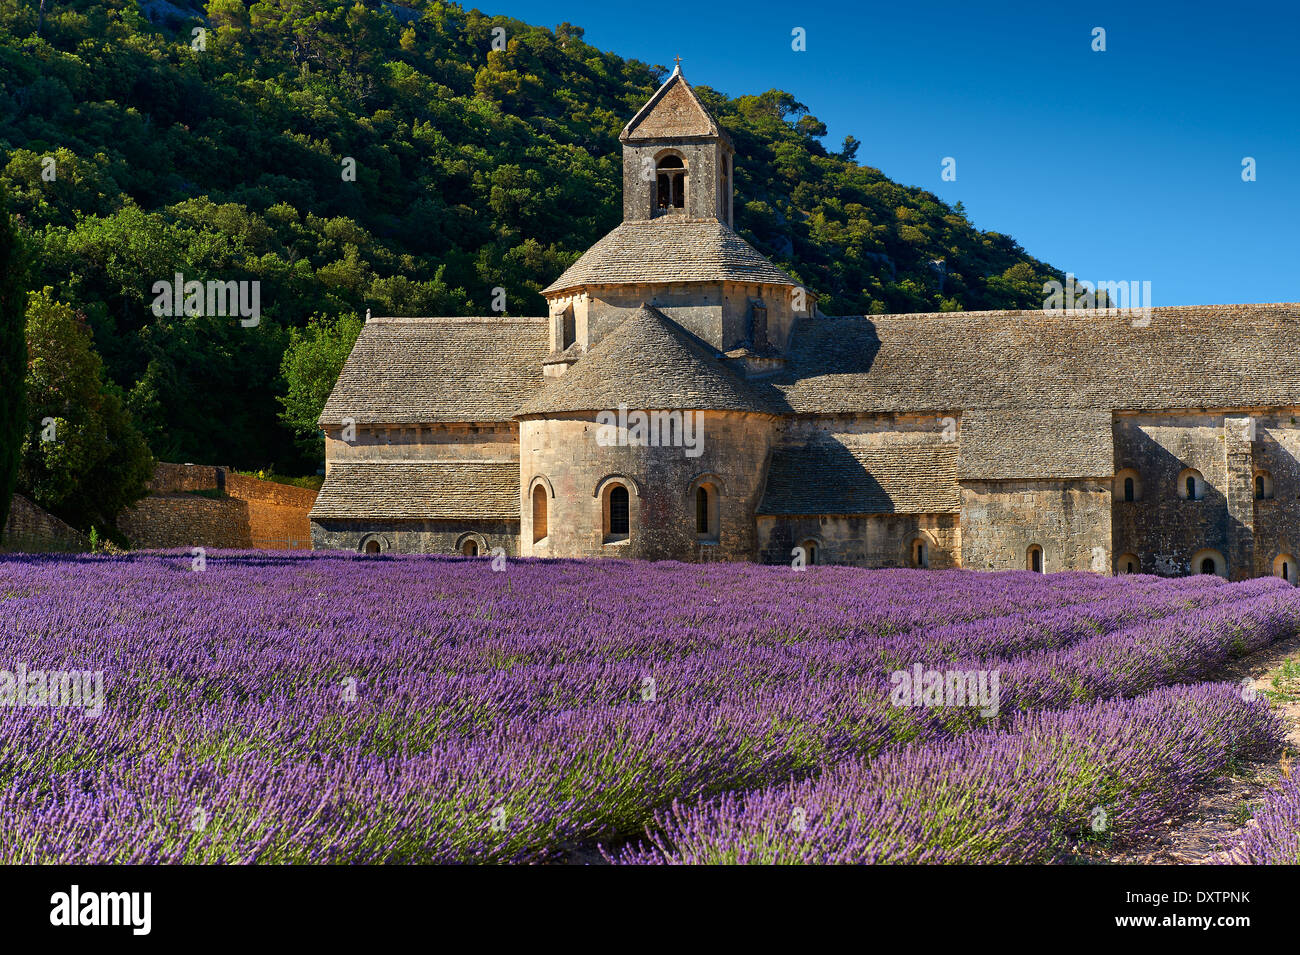 The 12th century Romanesque Cistercian Abbey of Notre Dame of Senanque set amongst the flowering lavender fields Stock Photo